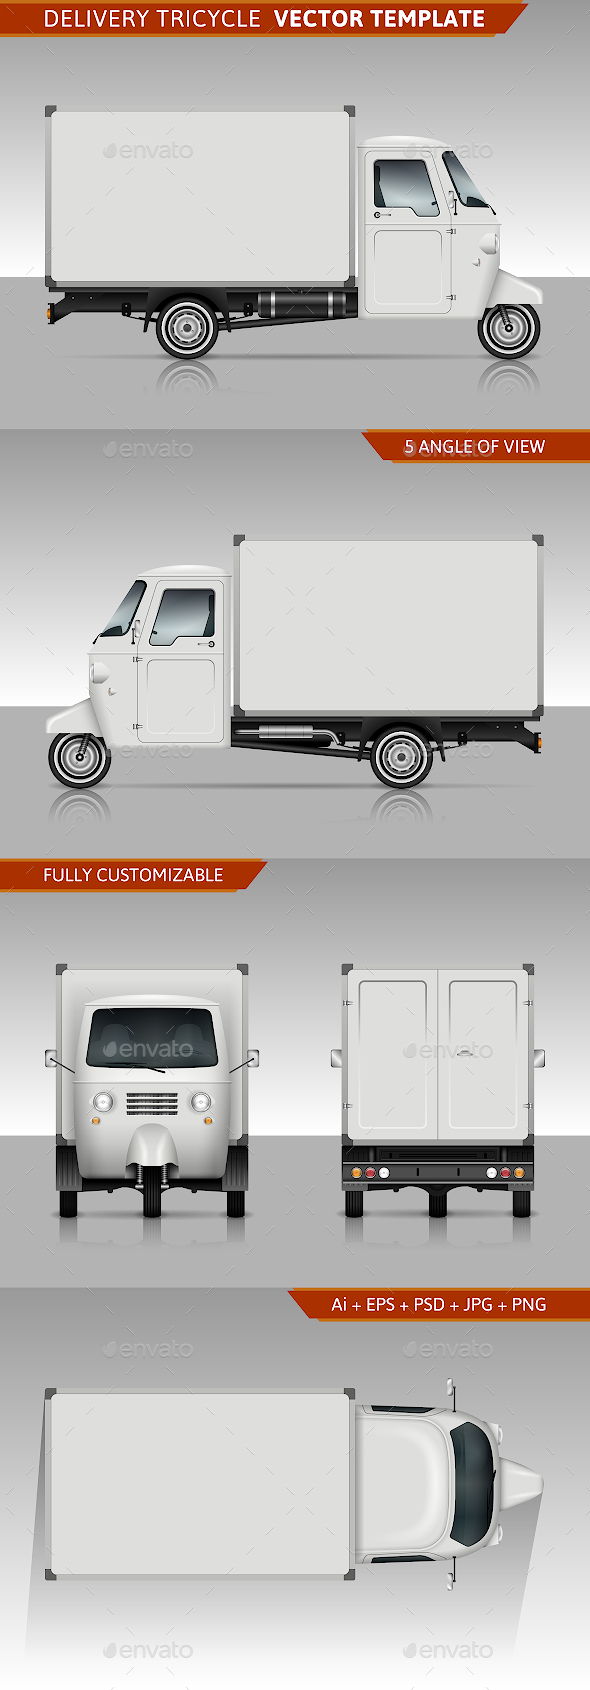 Delivery Tricycle Vector Template - Man-made Objects Objects